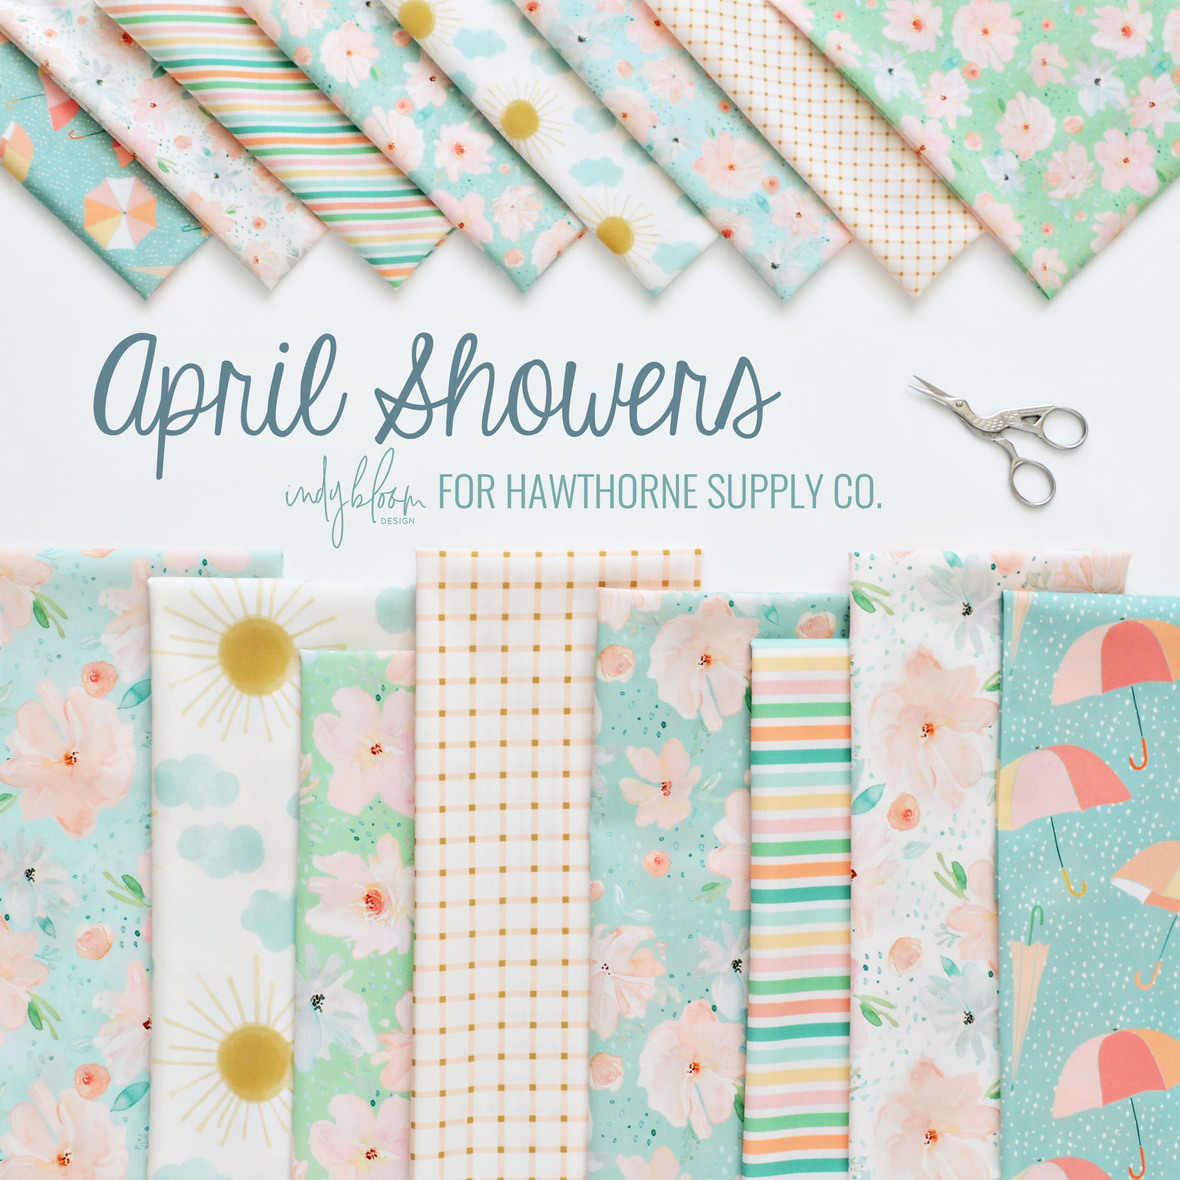 Indy Bloom April Showers Fabric for Hawthorne Supply Co 1